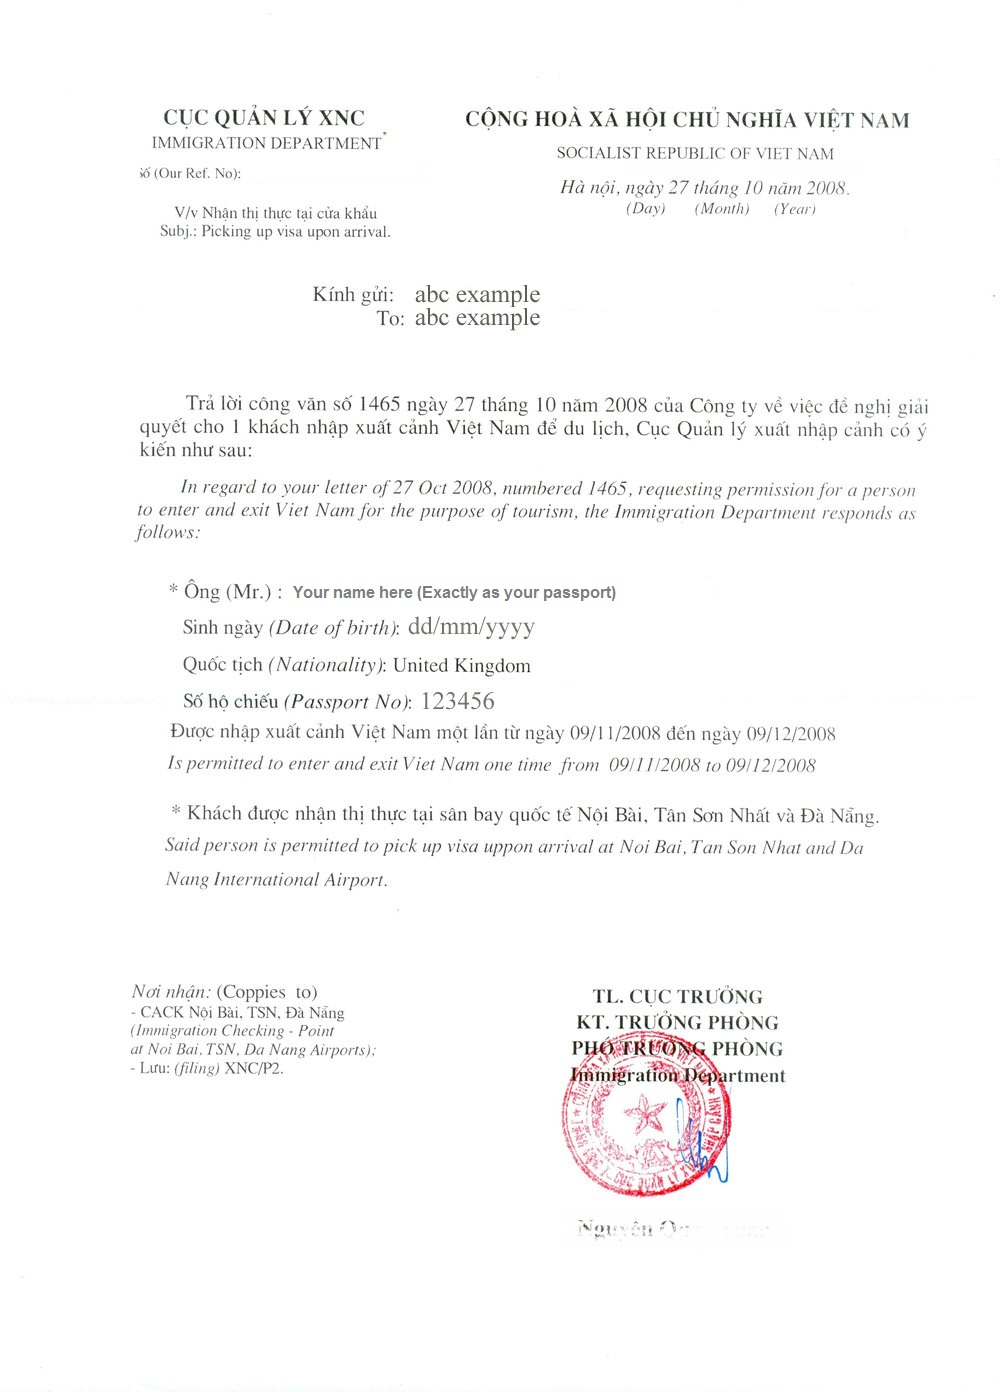 recommendation letter for tourist visa application coursework